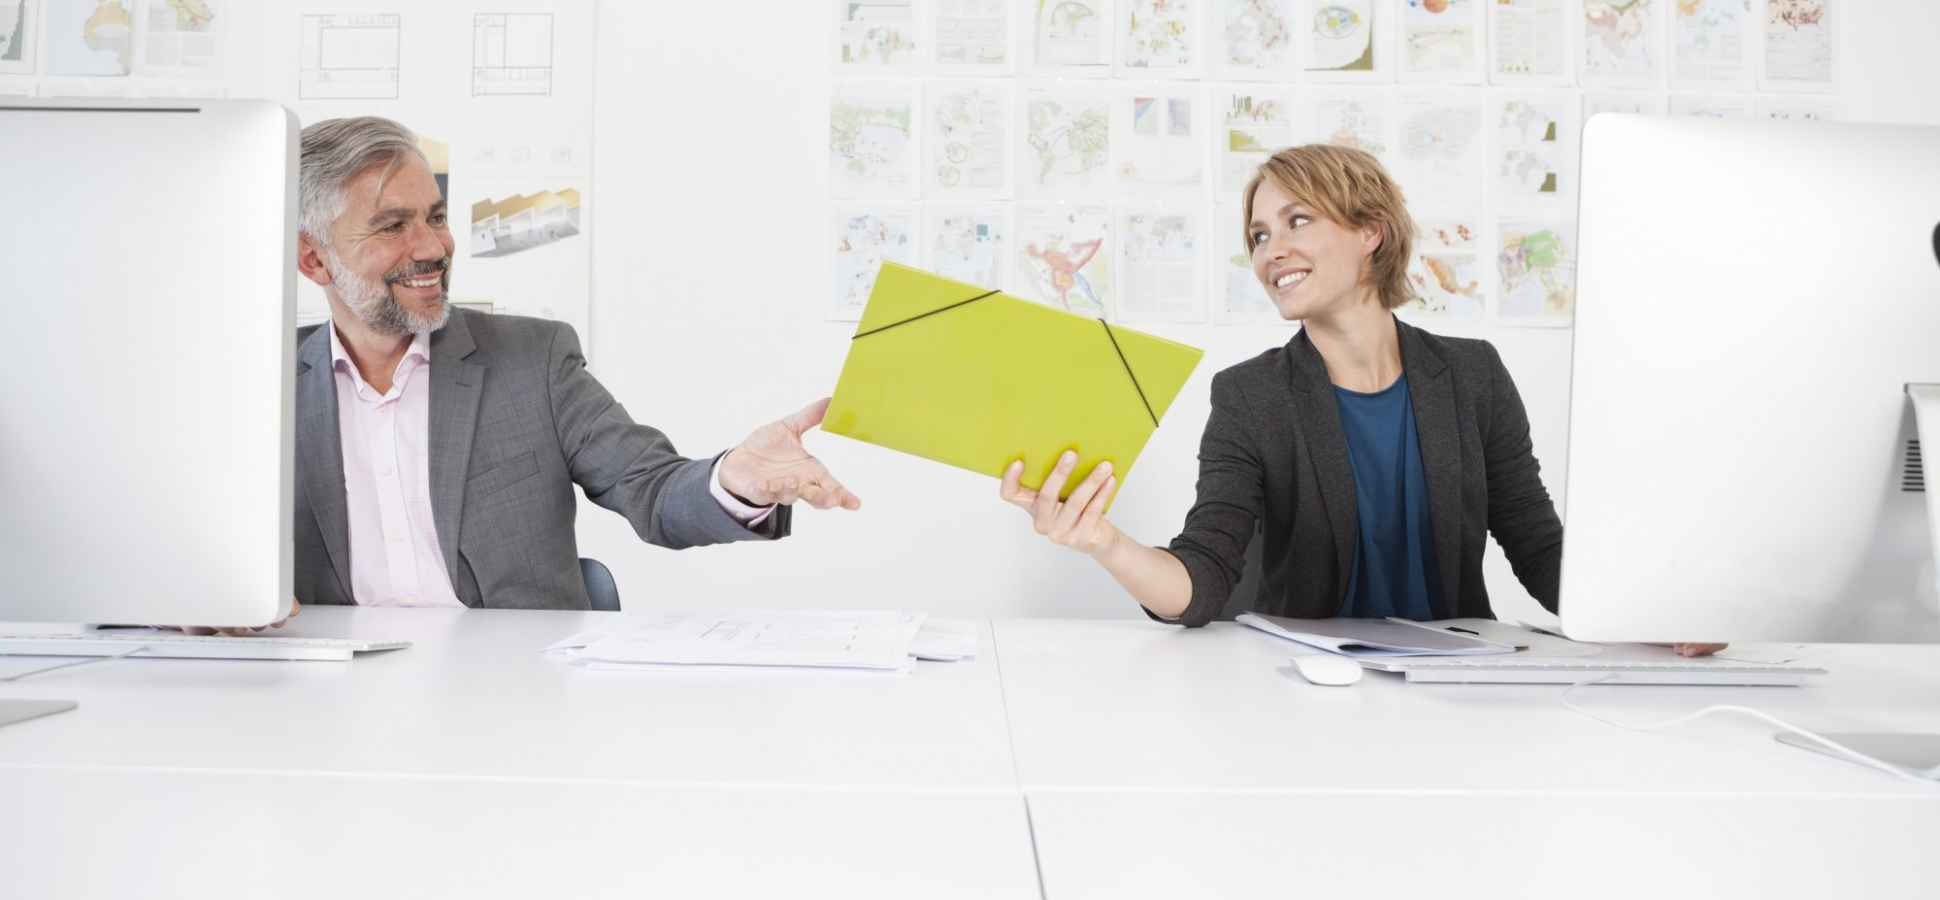 The 10 Simple Habits of Highly Effective Delegation